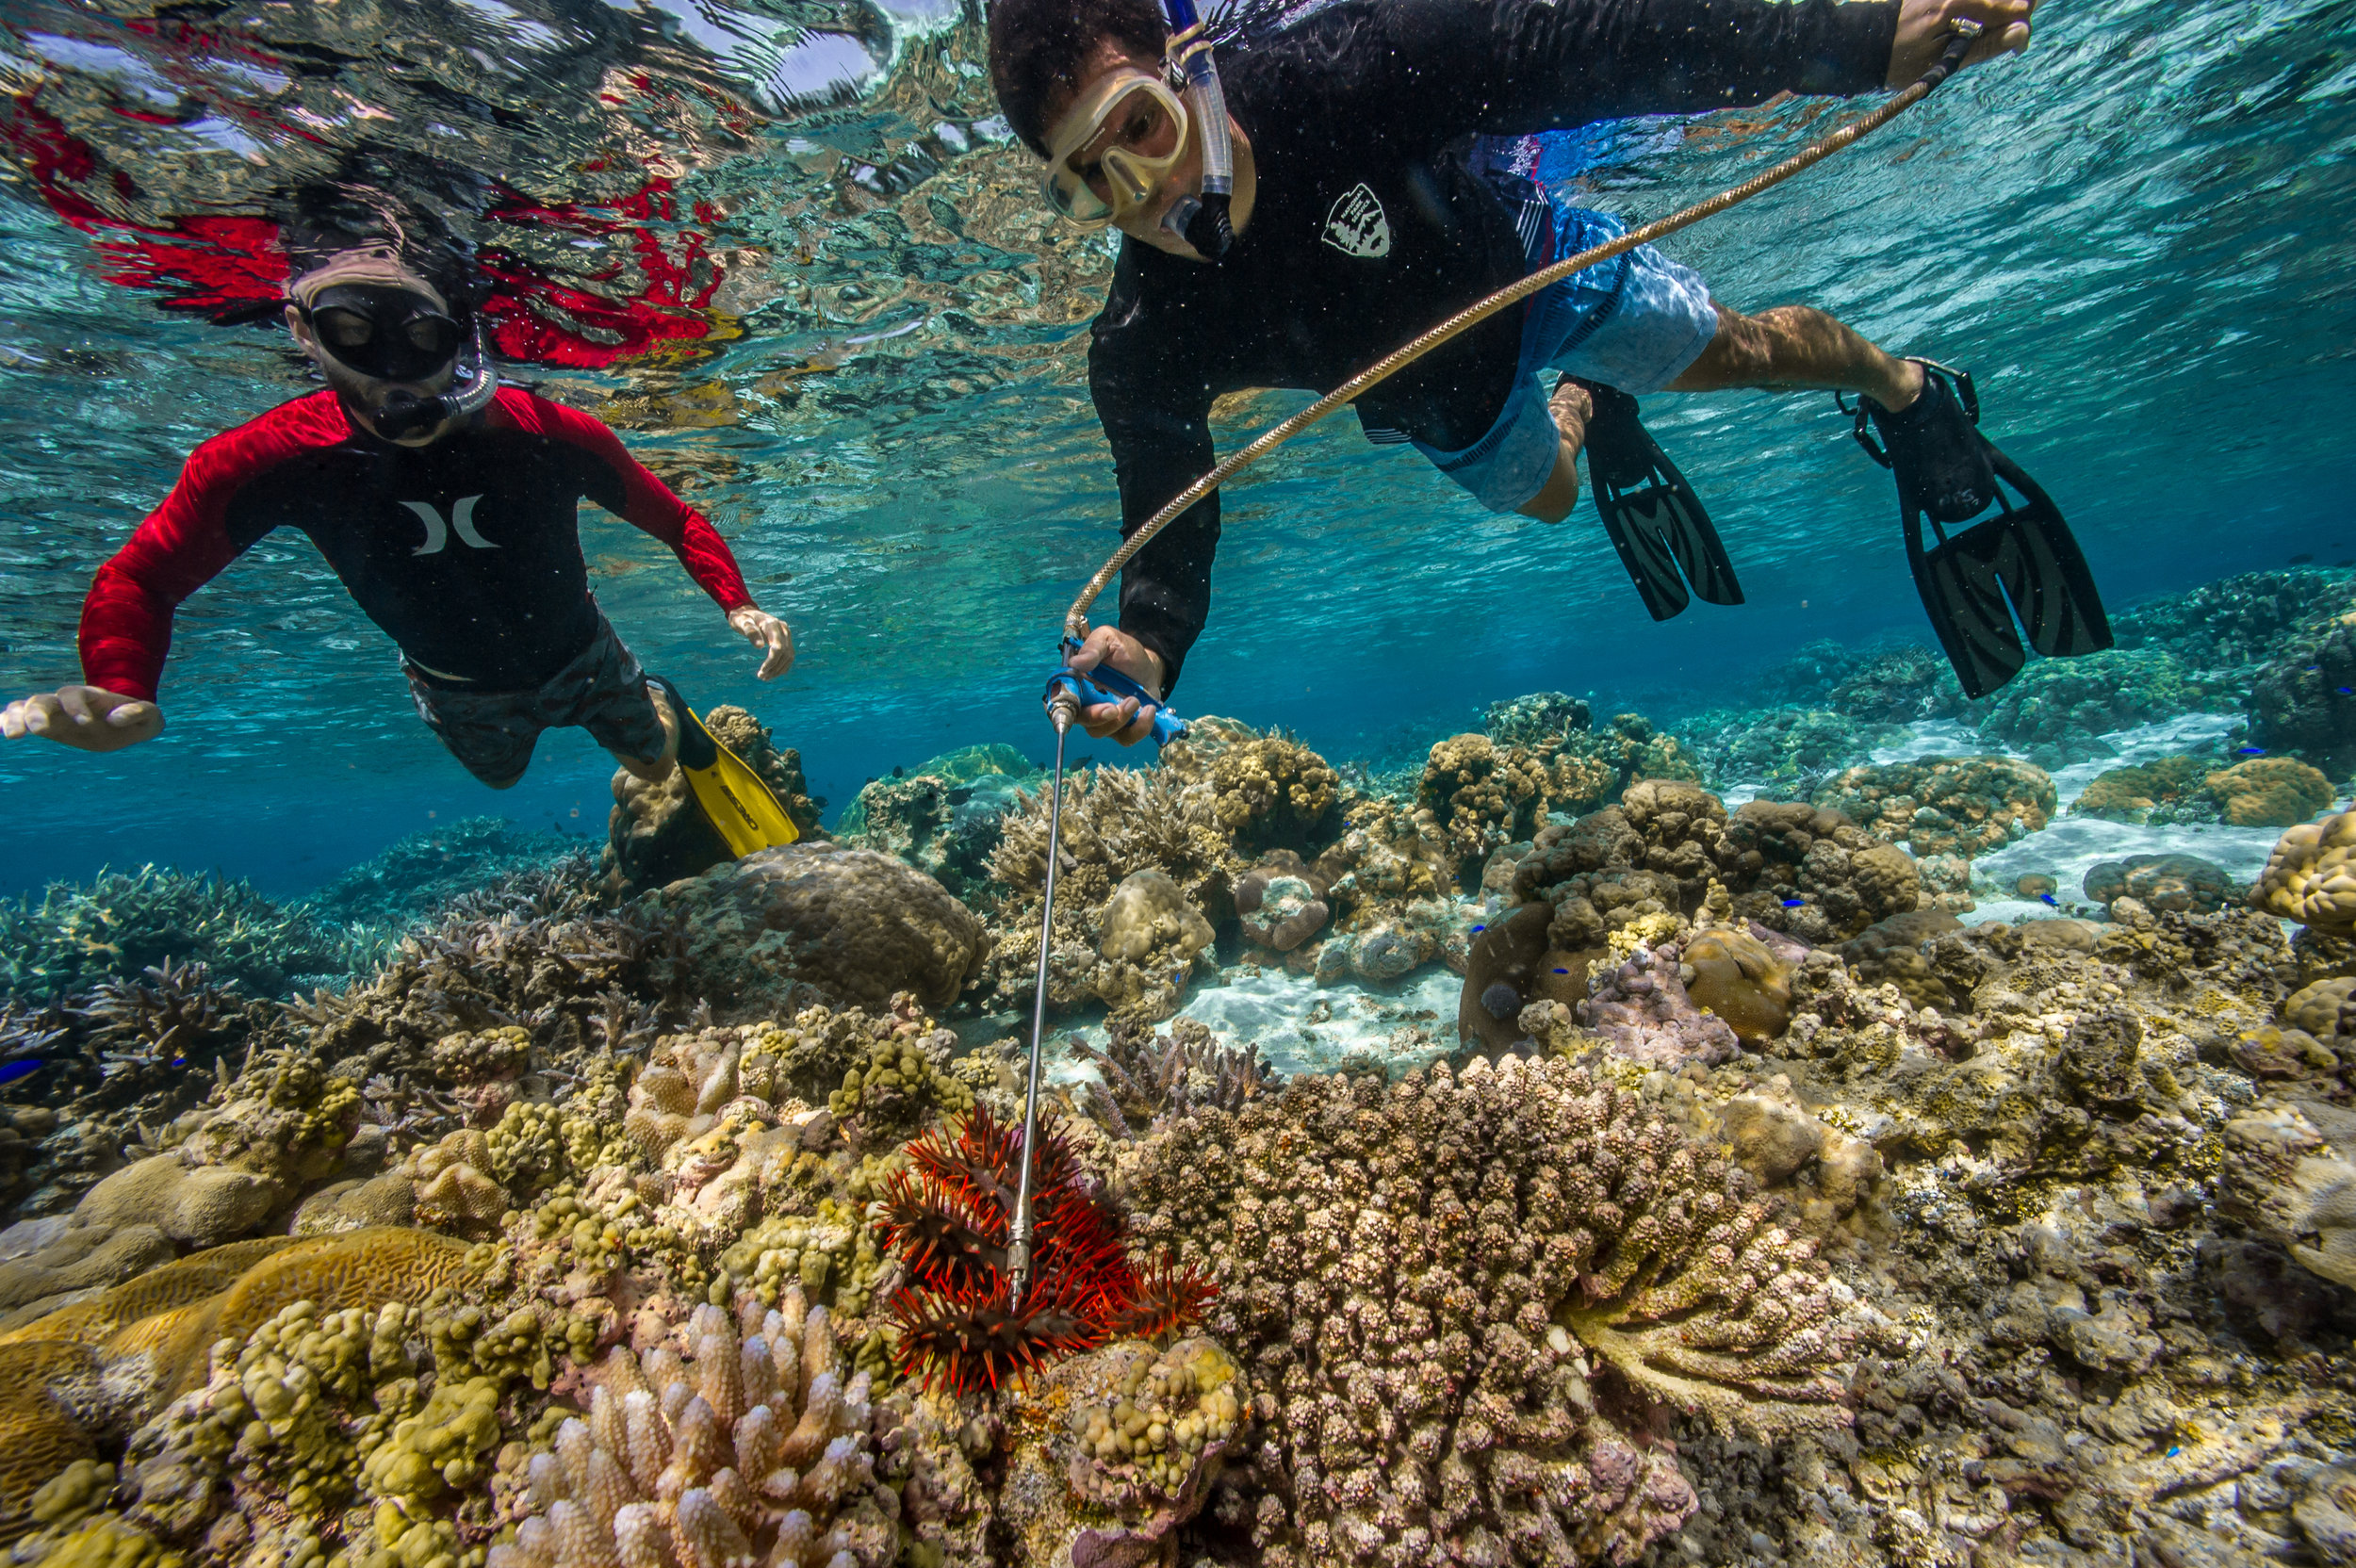 killing invasive species, National Park of American Samoa Credit: Shaun wolfe / coral reef image bank